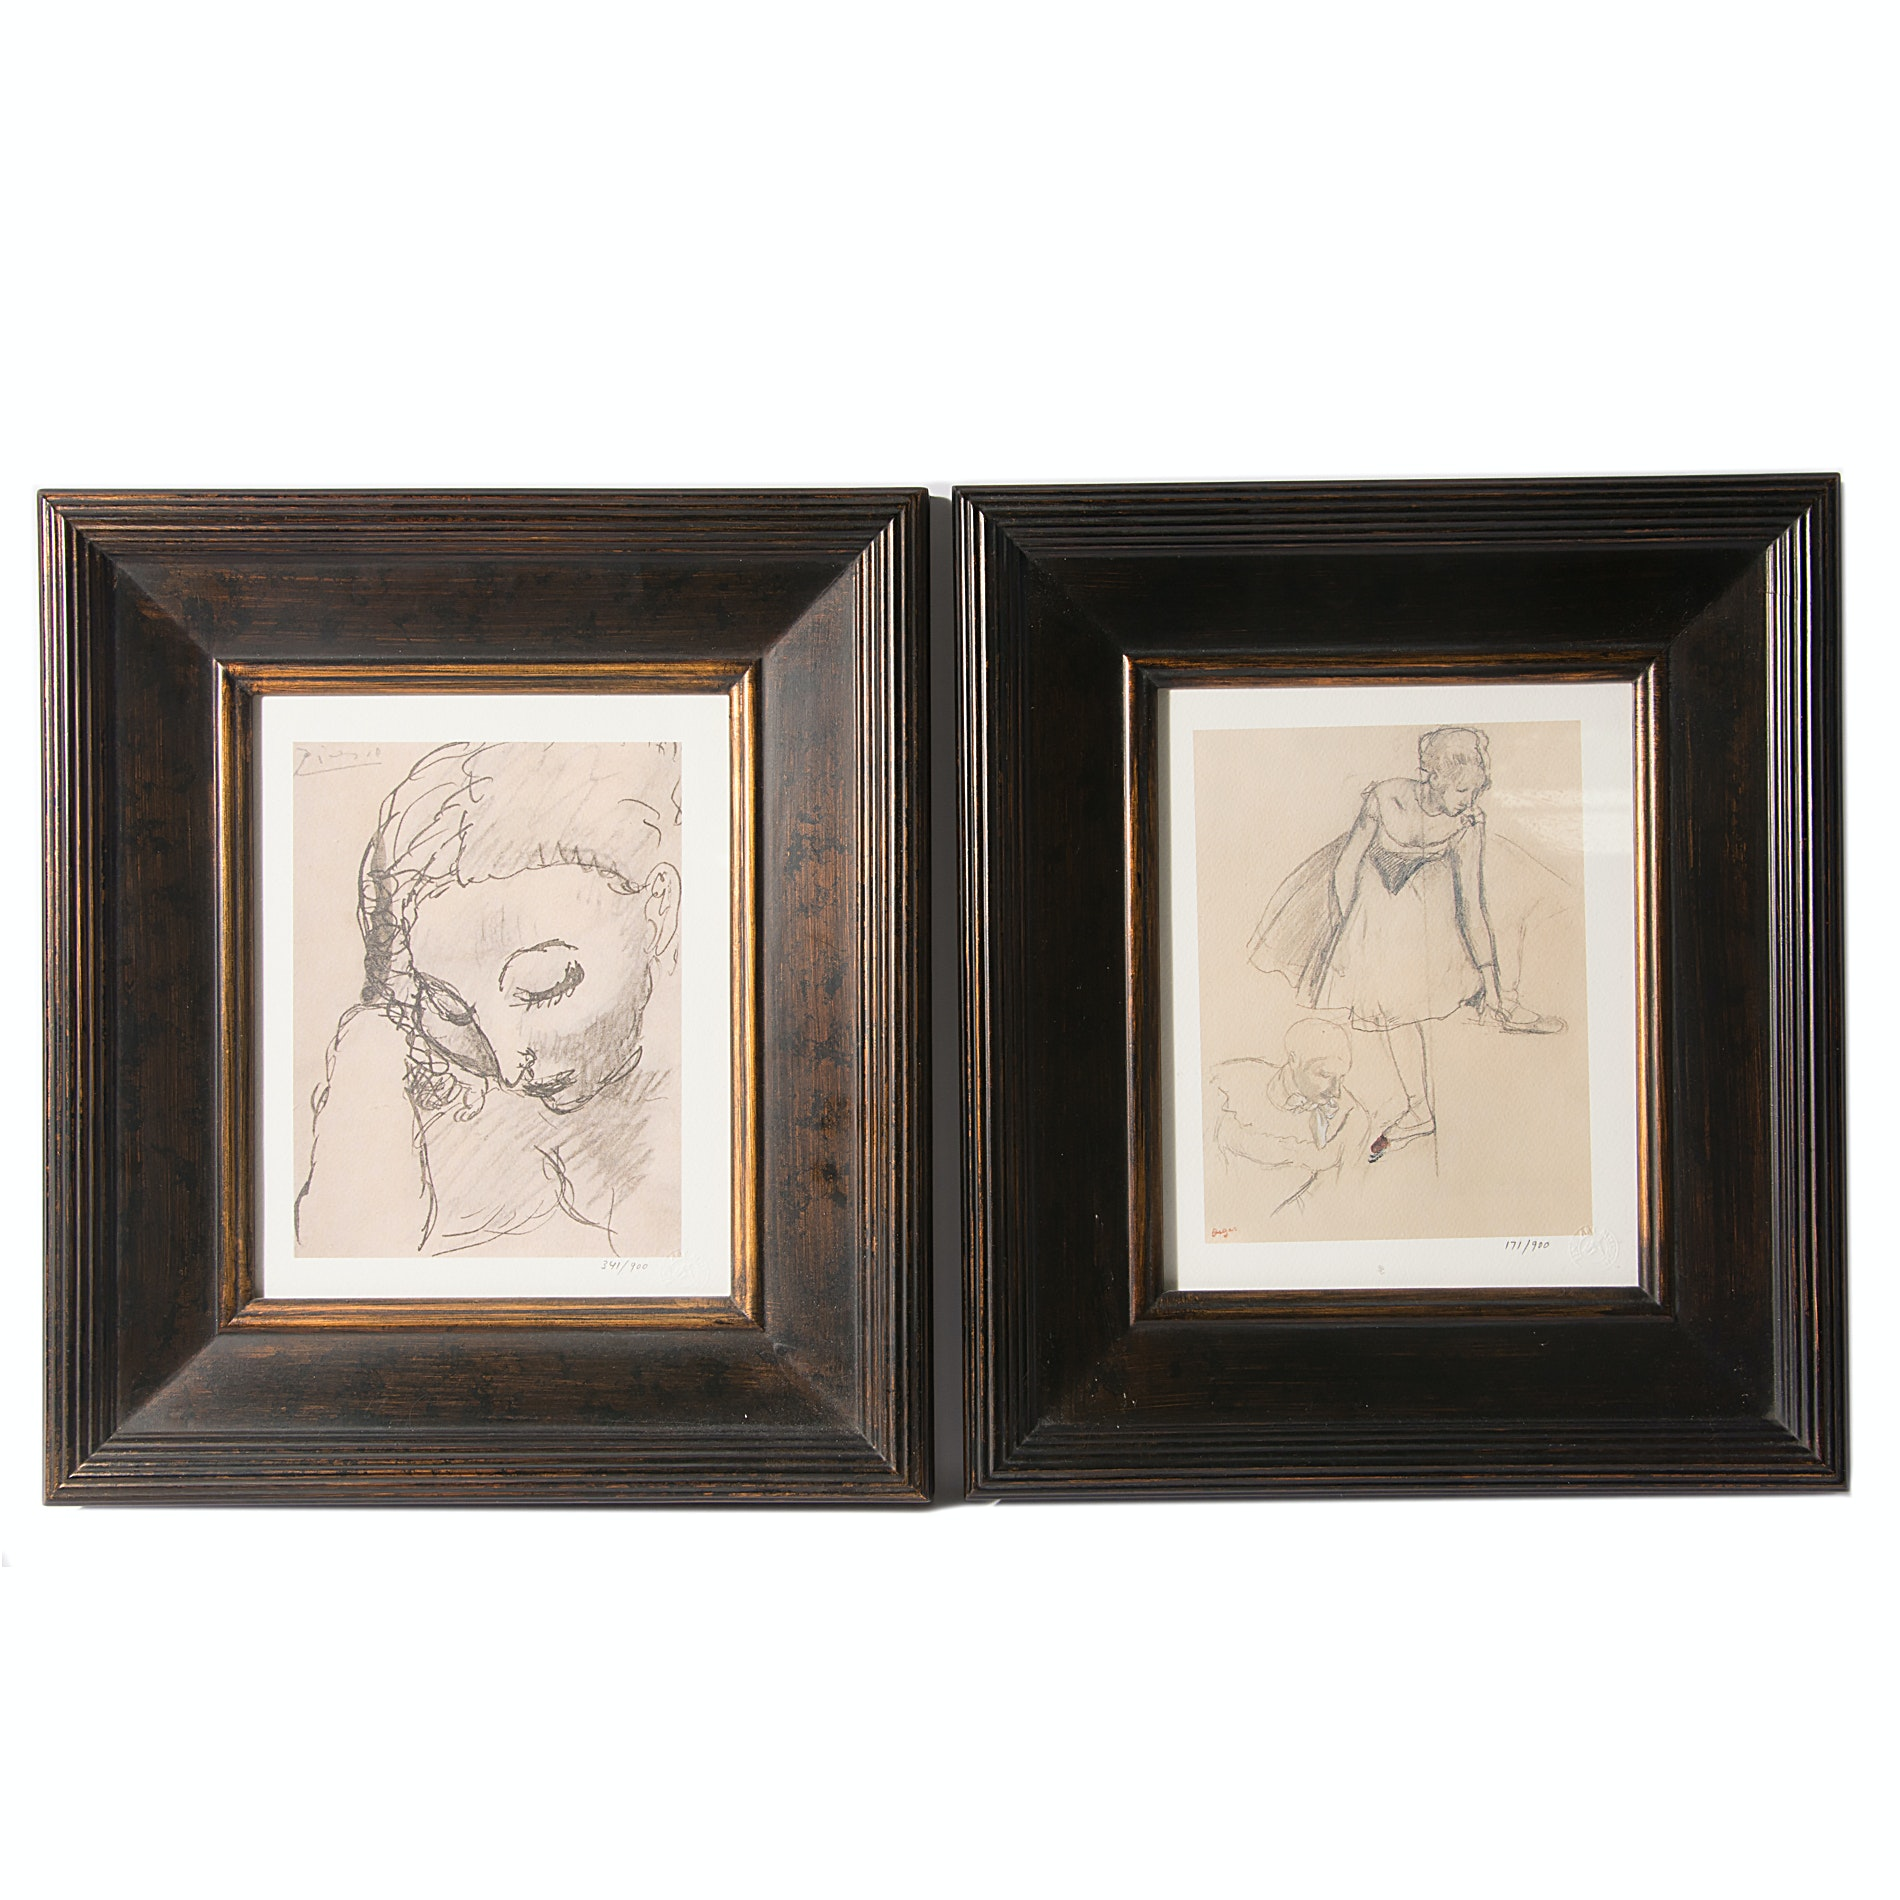 Pair of Giclees After Picasso and Degas